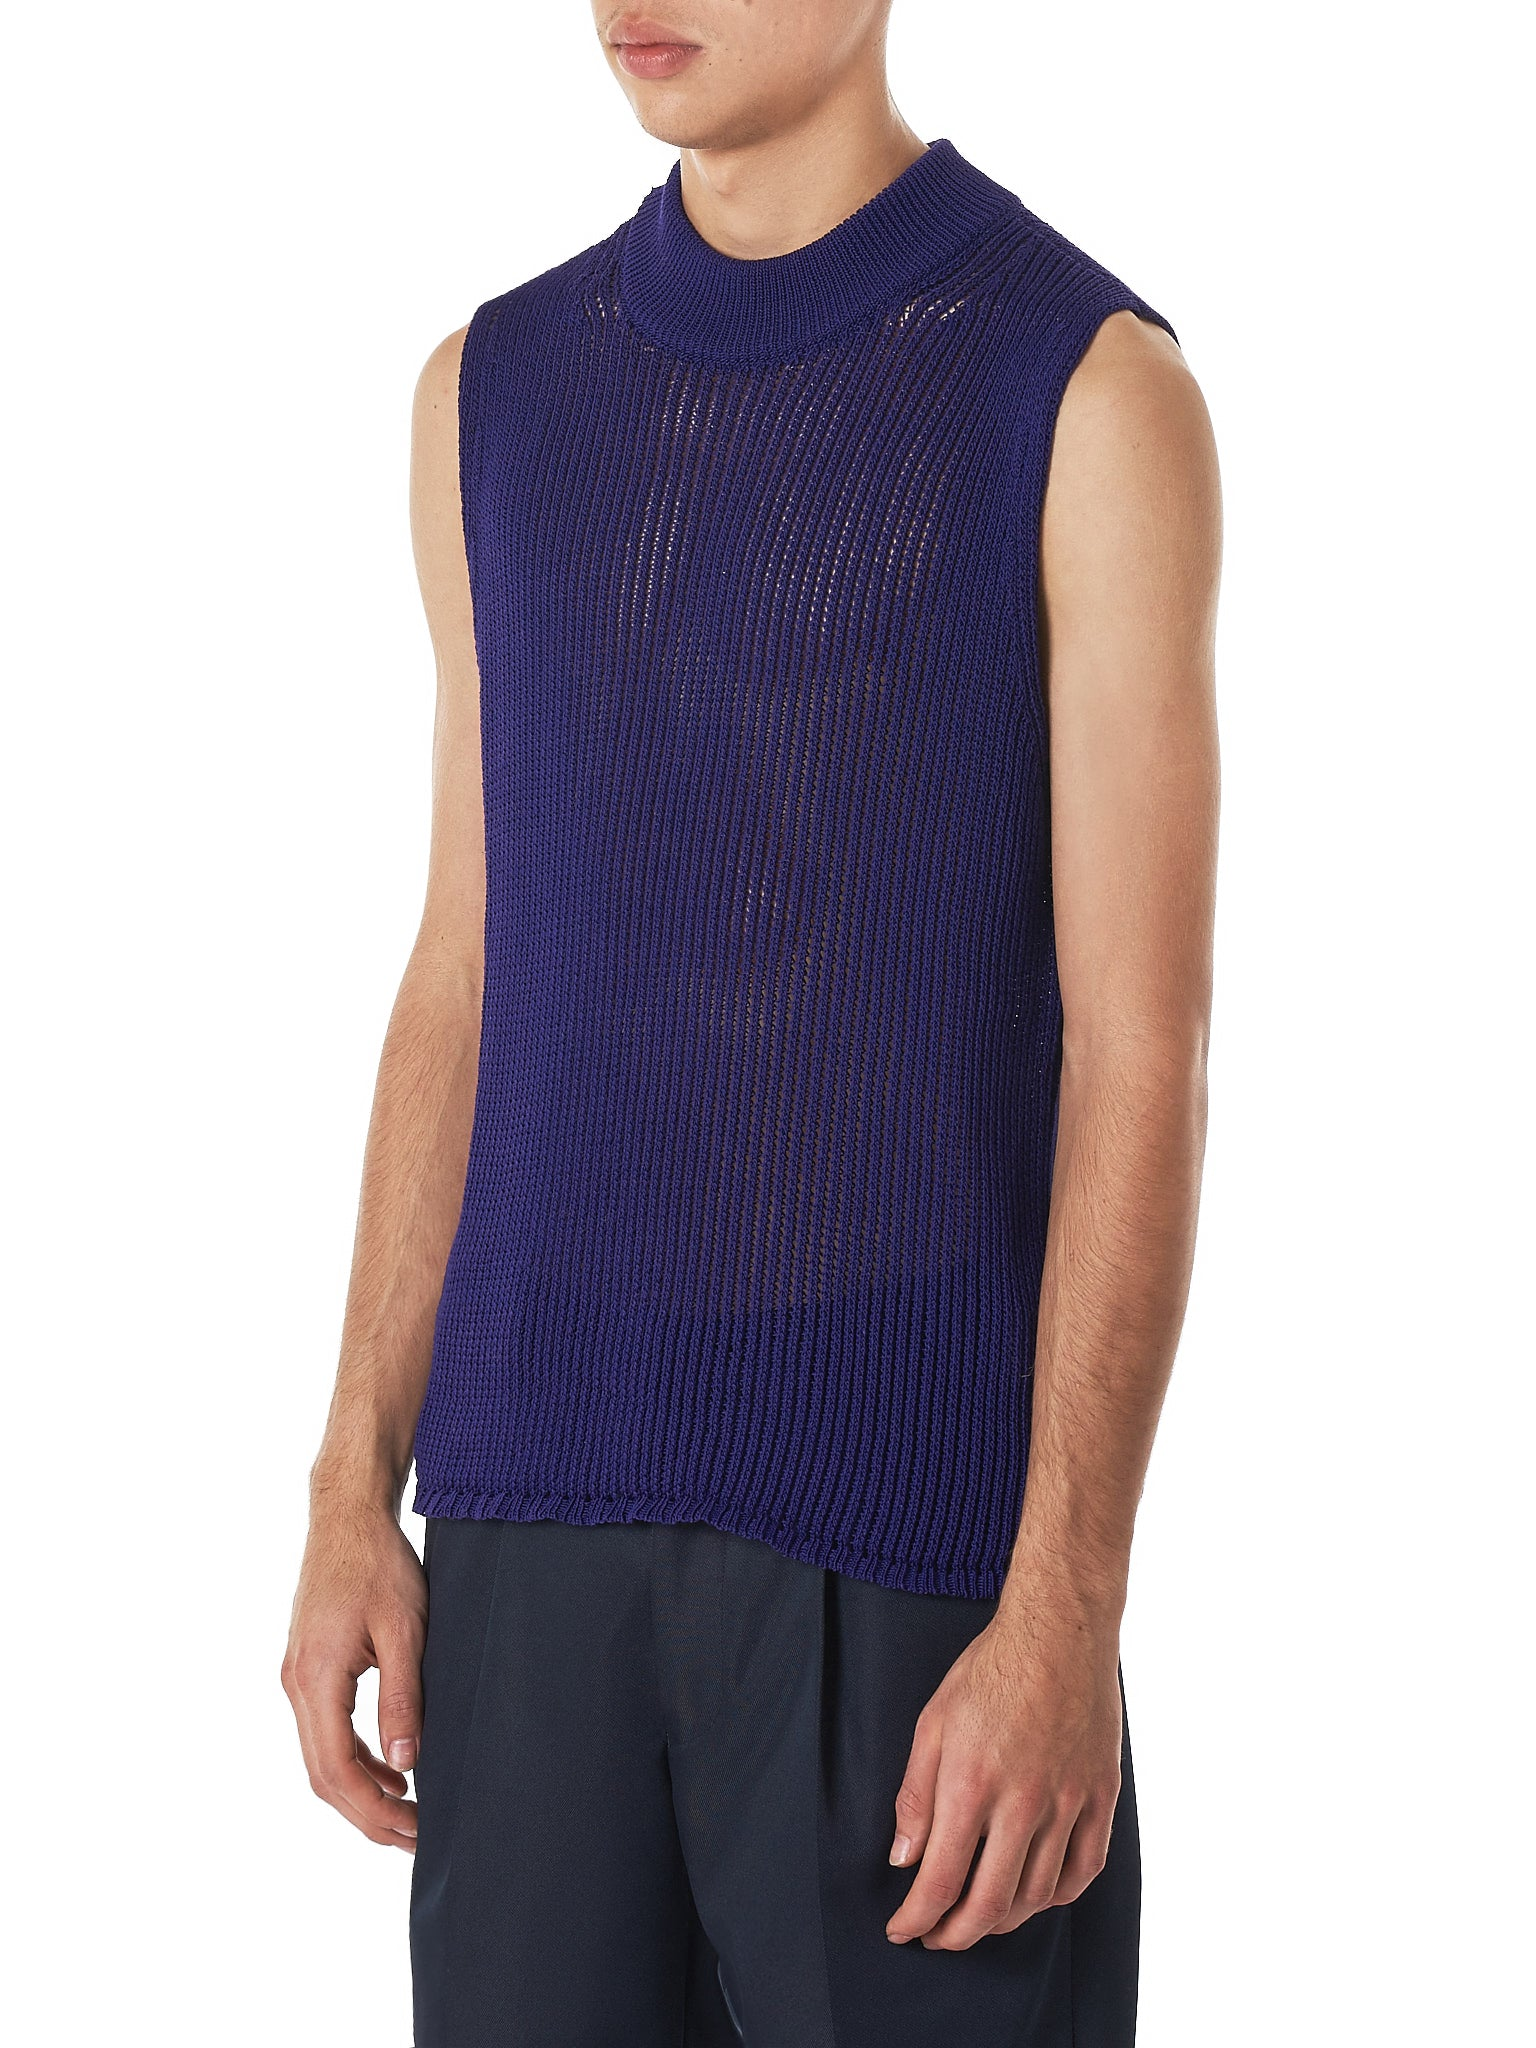 Namacheko Purple Knit Vest - Hlorenzo Side